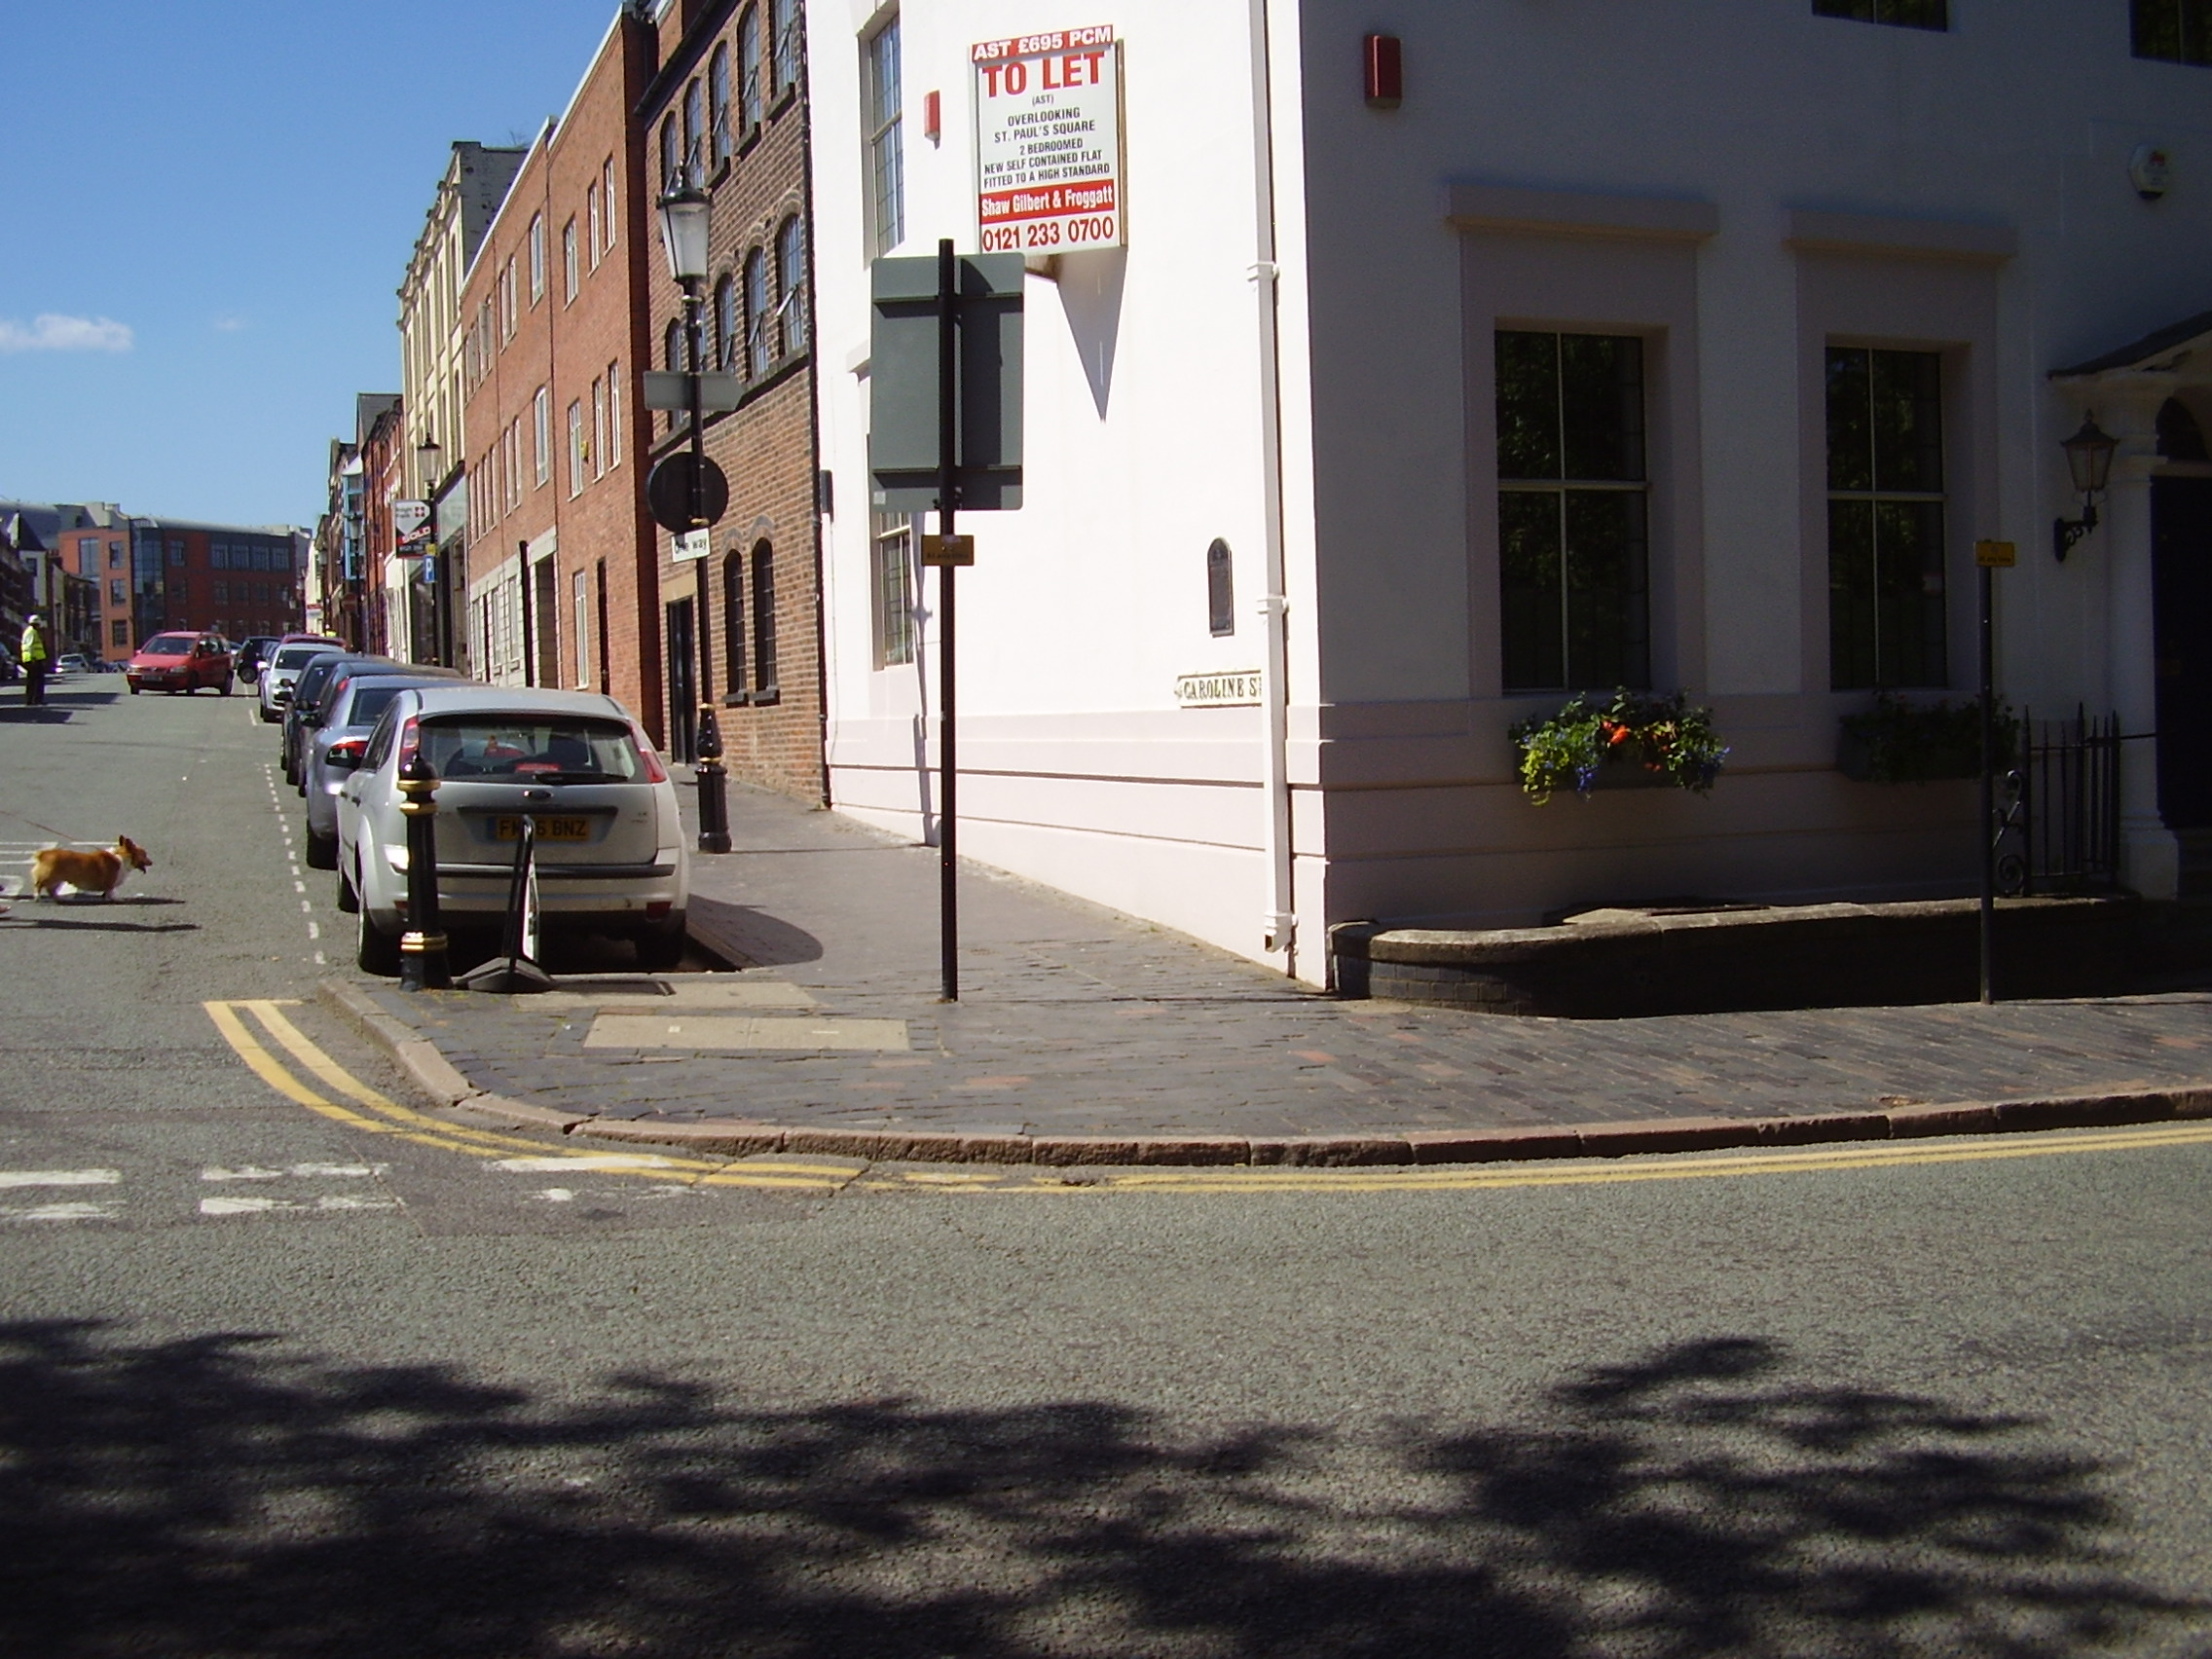 2008 Street view photo 9 of the Jewellery Quarter Birmingham